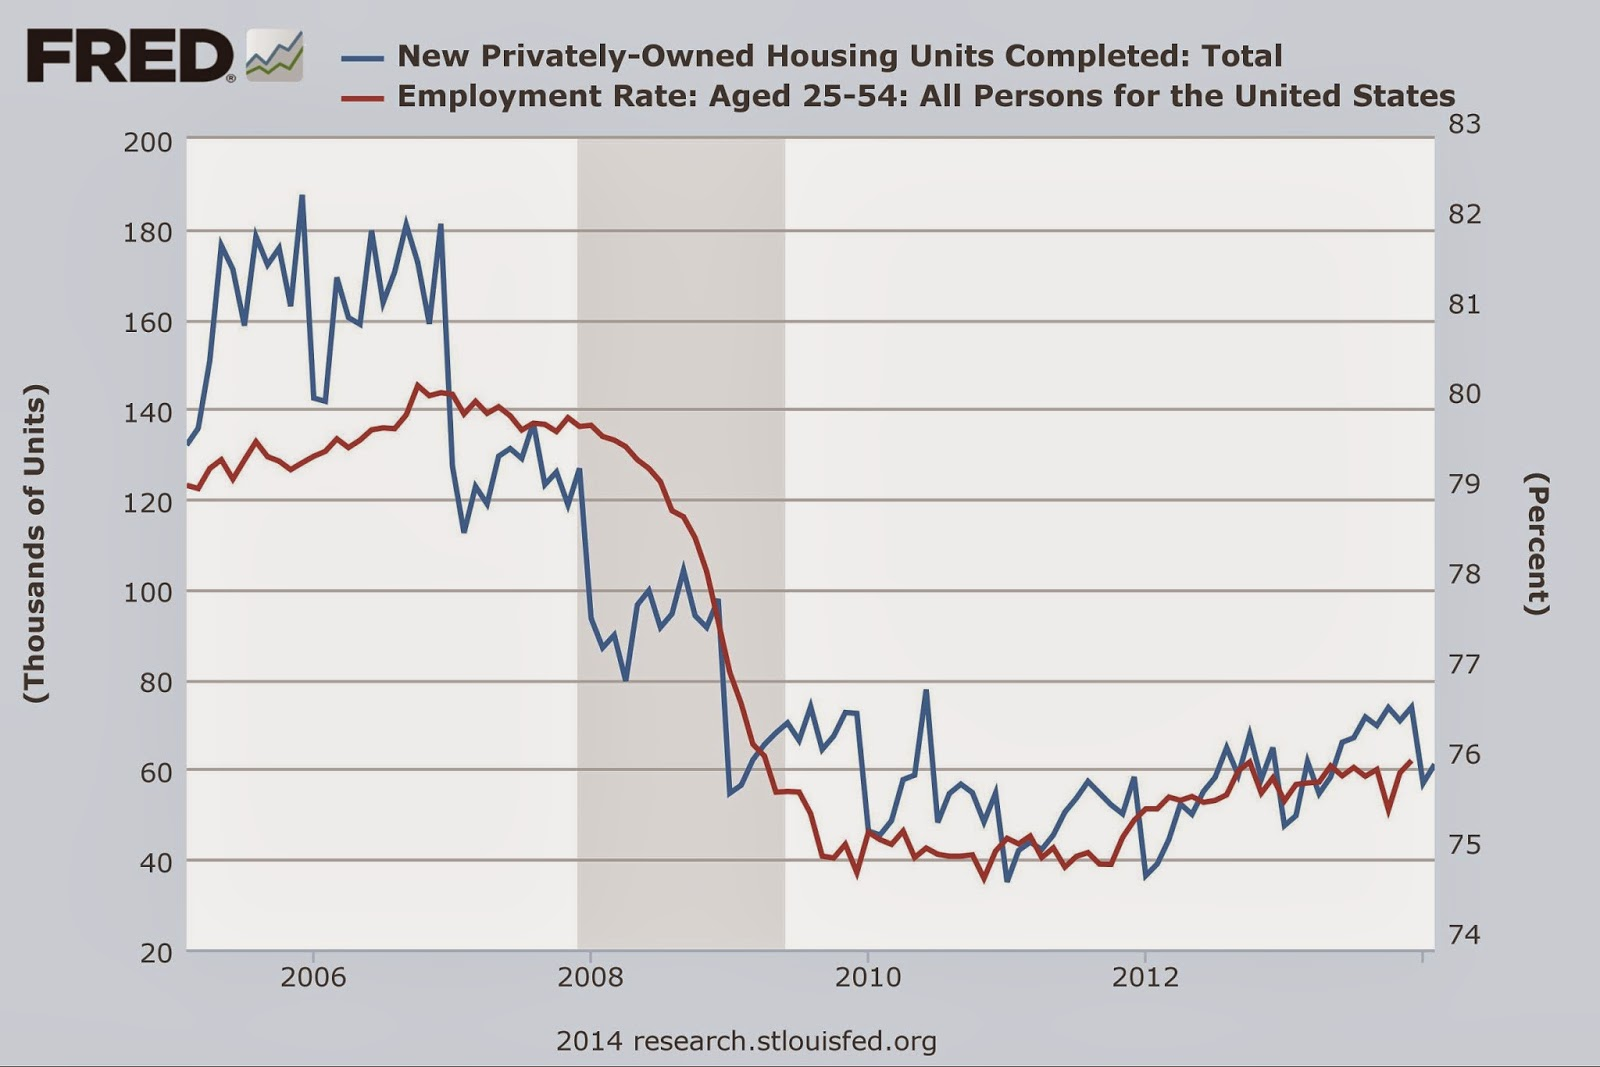 Chart of New Privately-Owned Housing United Completed: Total and Unemployment Rate: Aged 25-54: All Persons for the United States, Lesser Depression / Great Recession